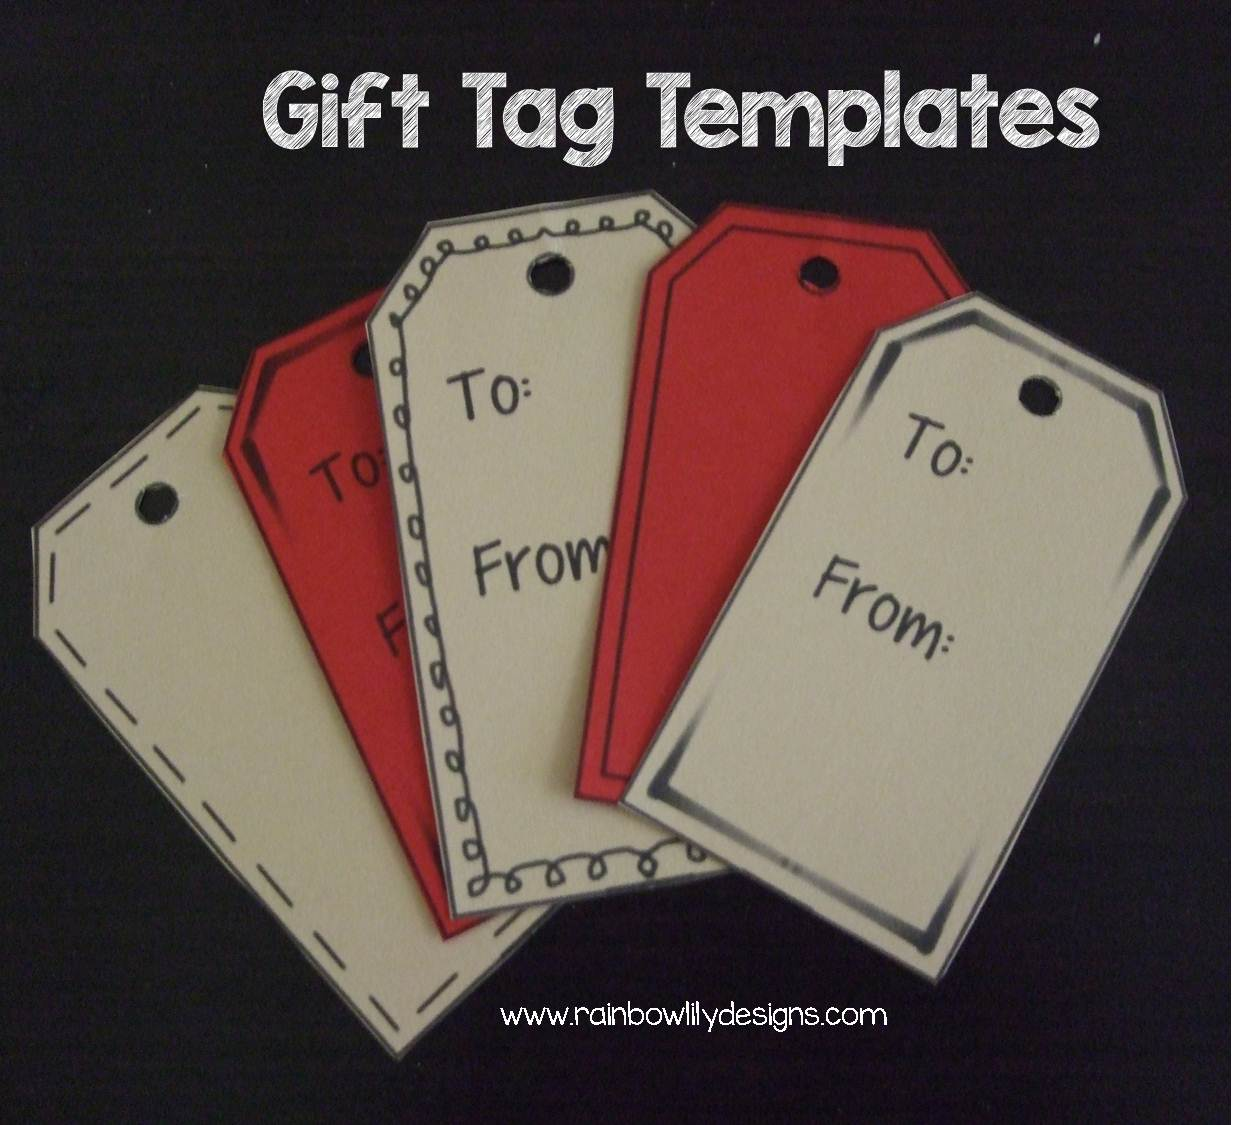 rainbow lily designs gift tag templates